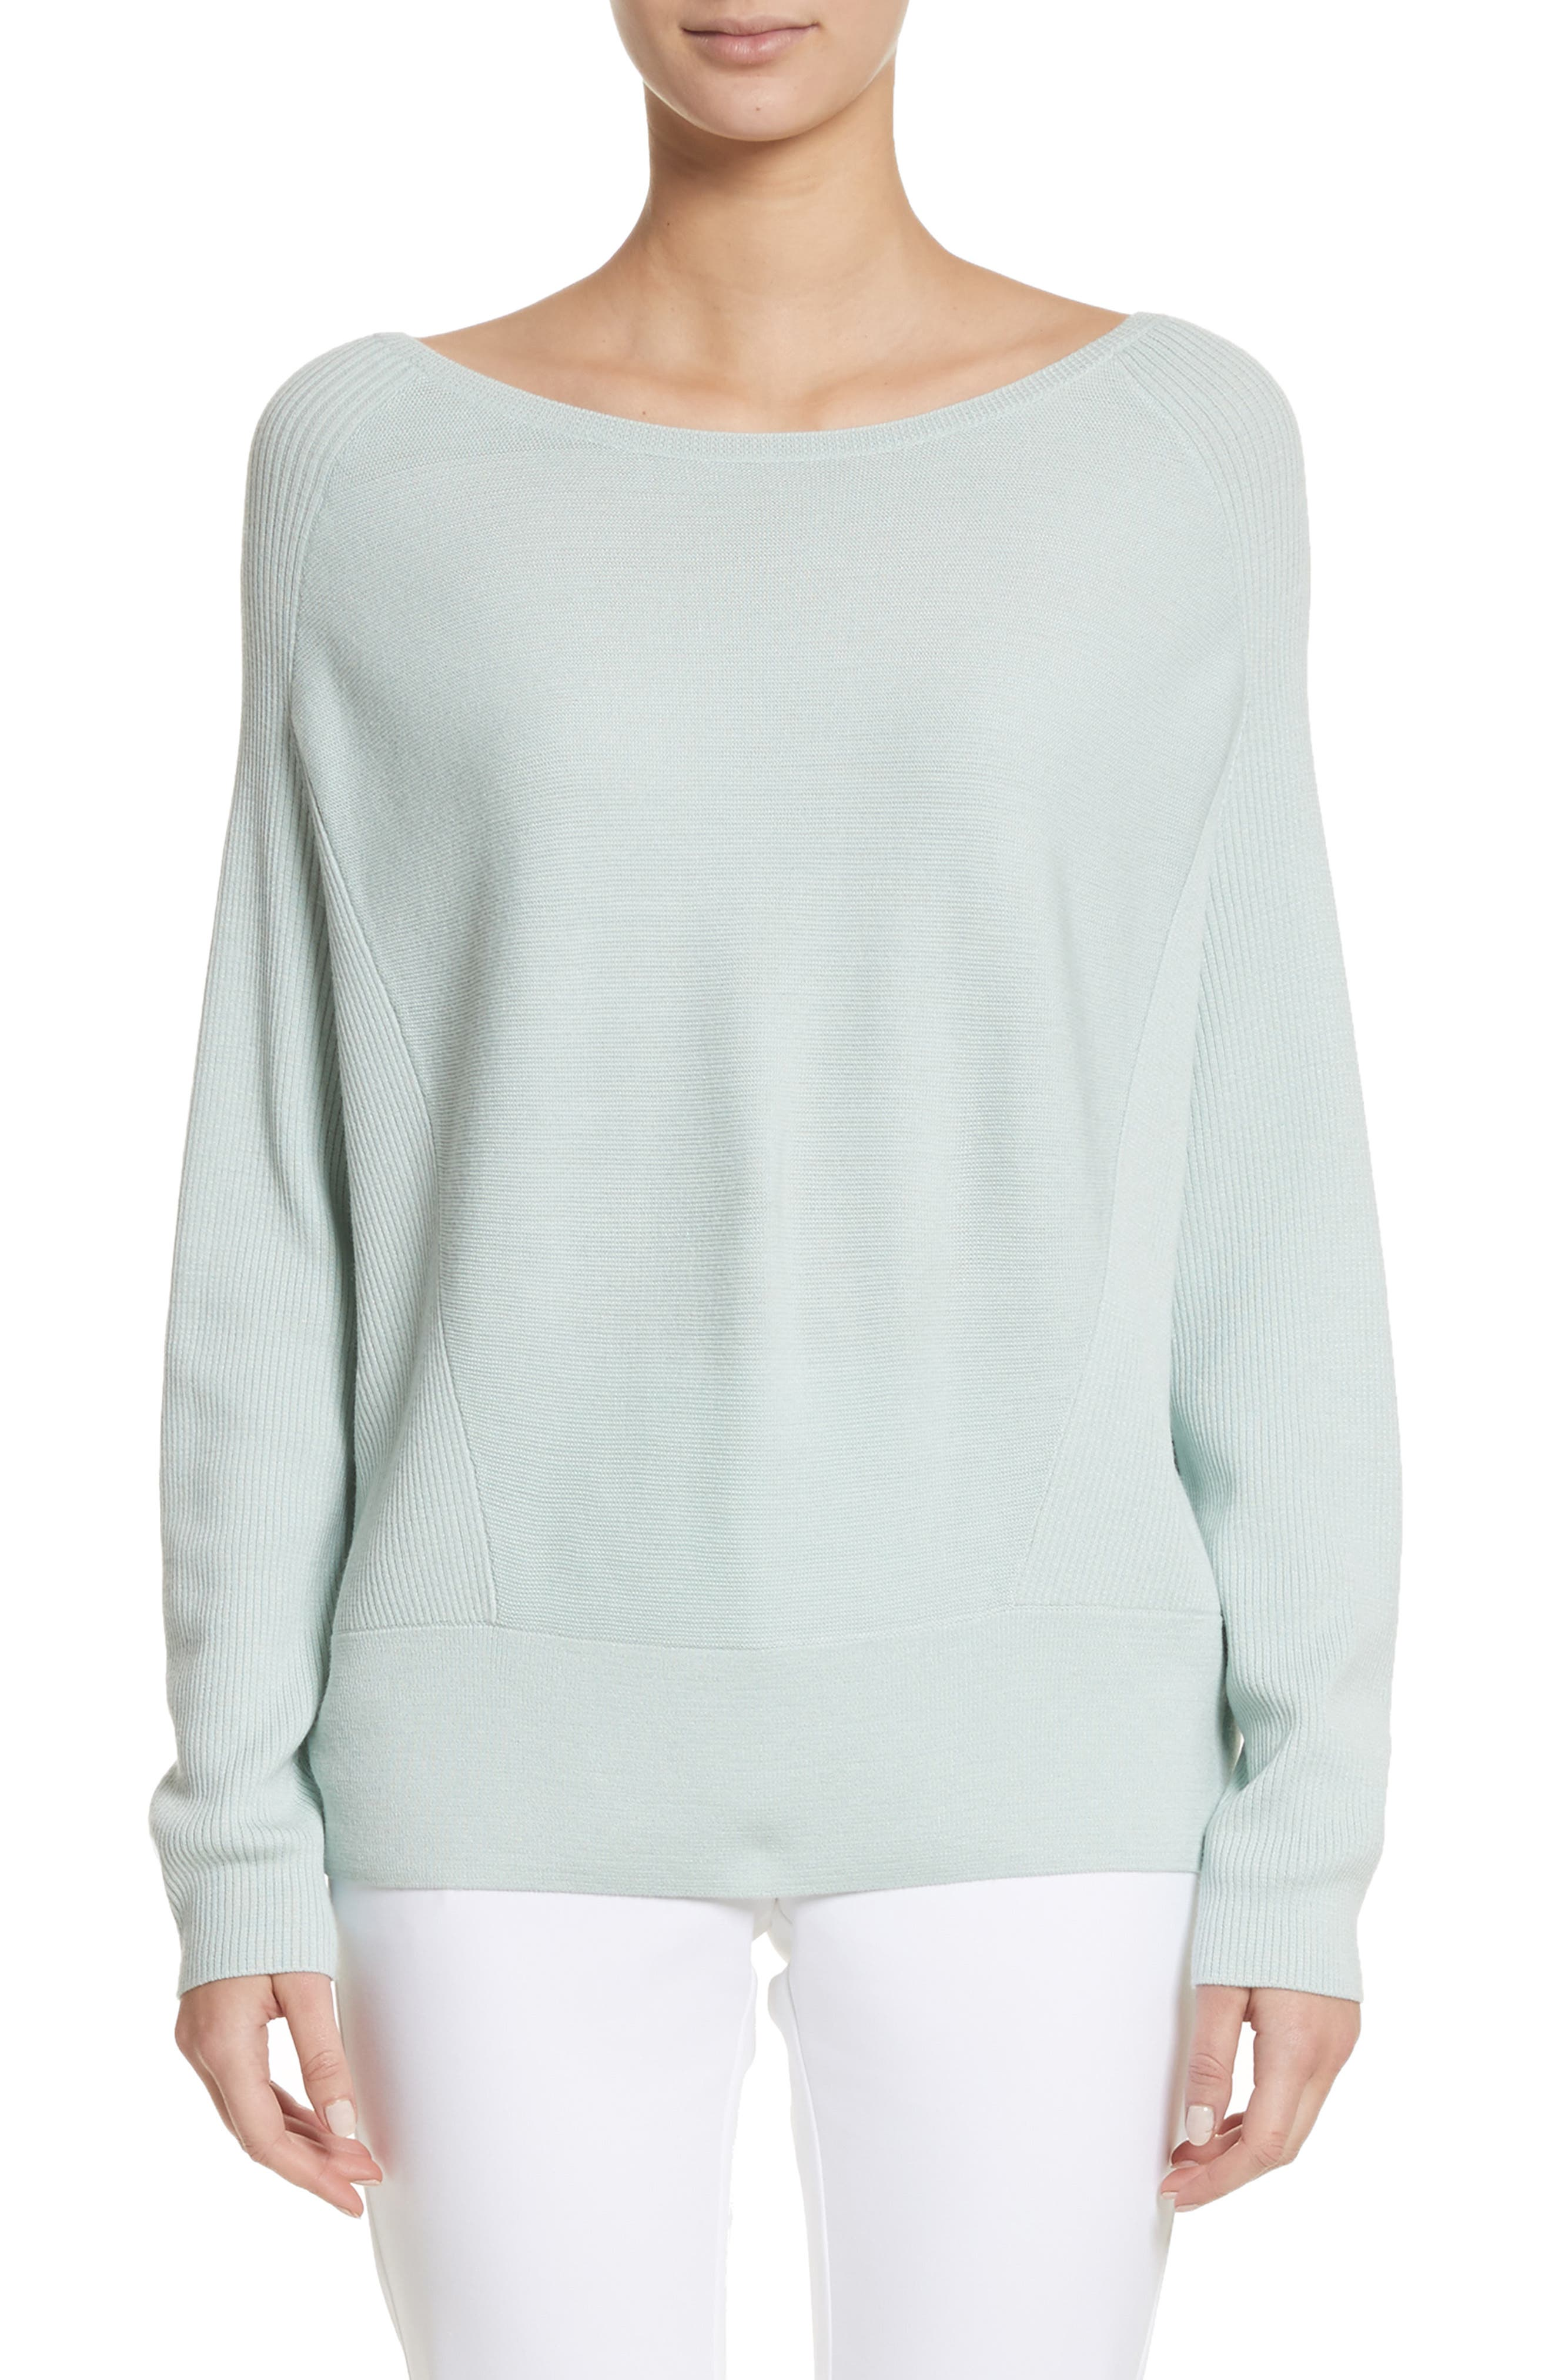 Alternate Image 1 Selected - St. John Collection Links Rib Knit Sweater